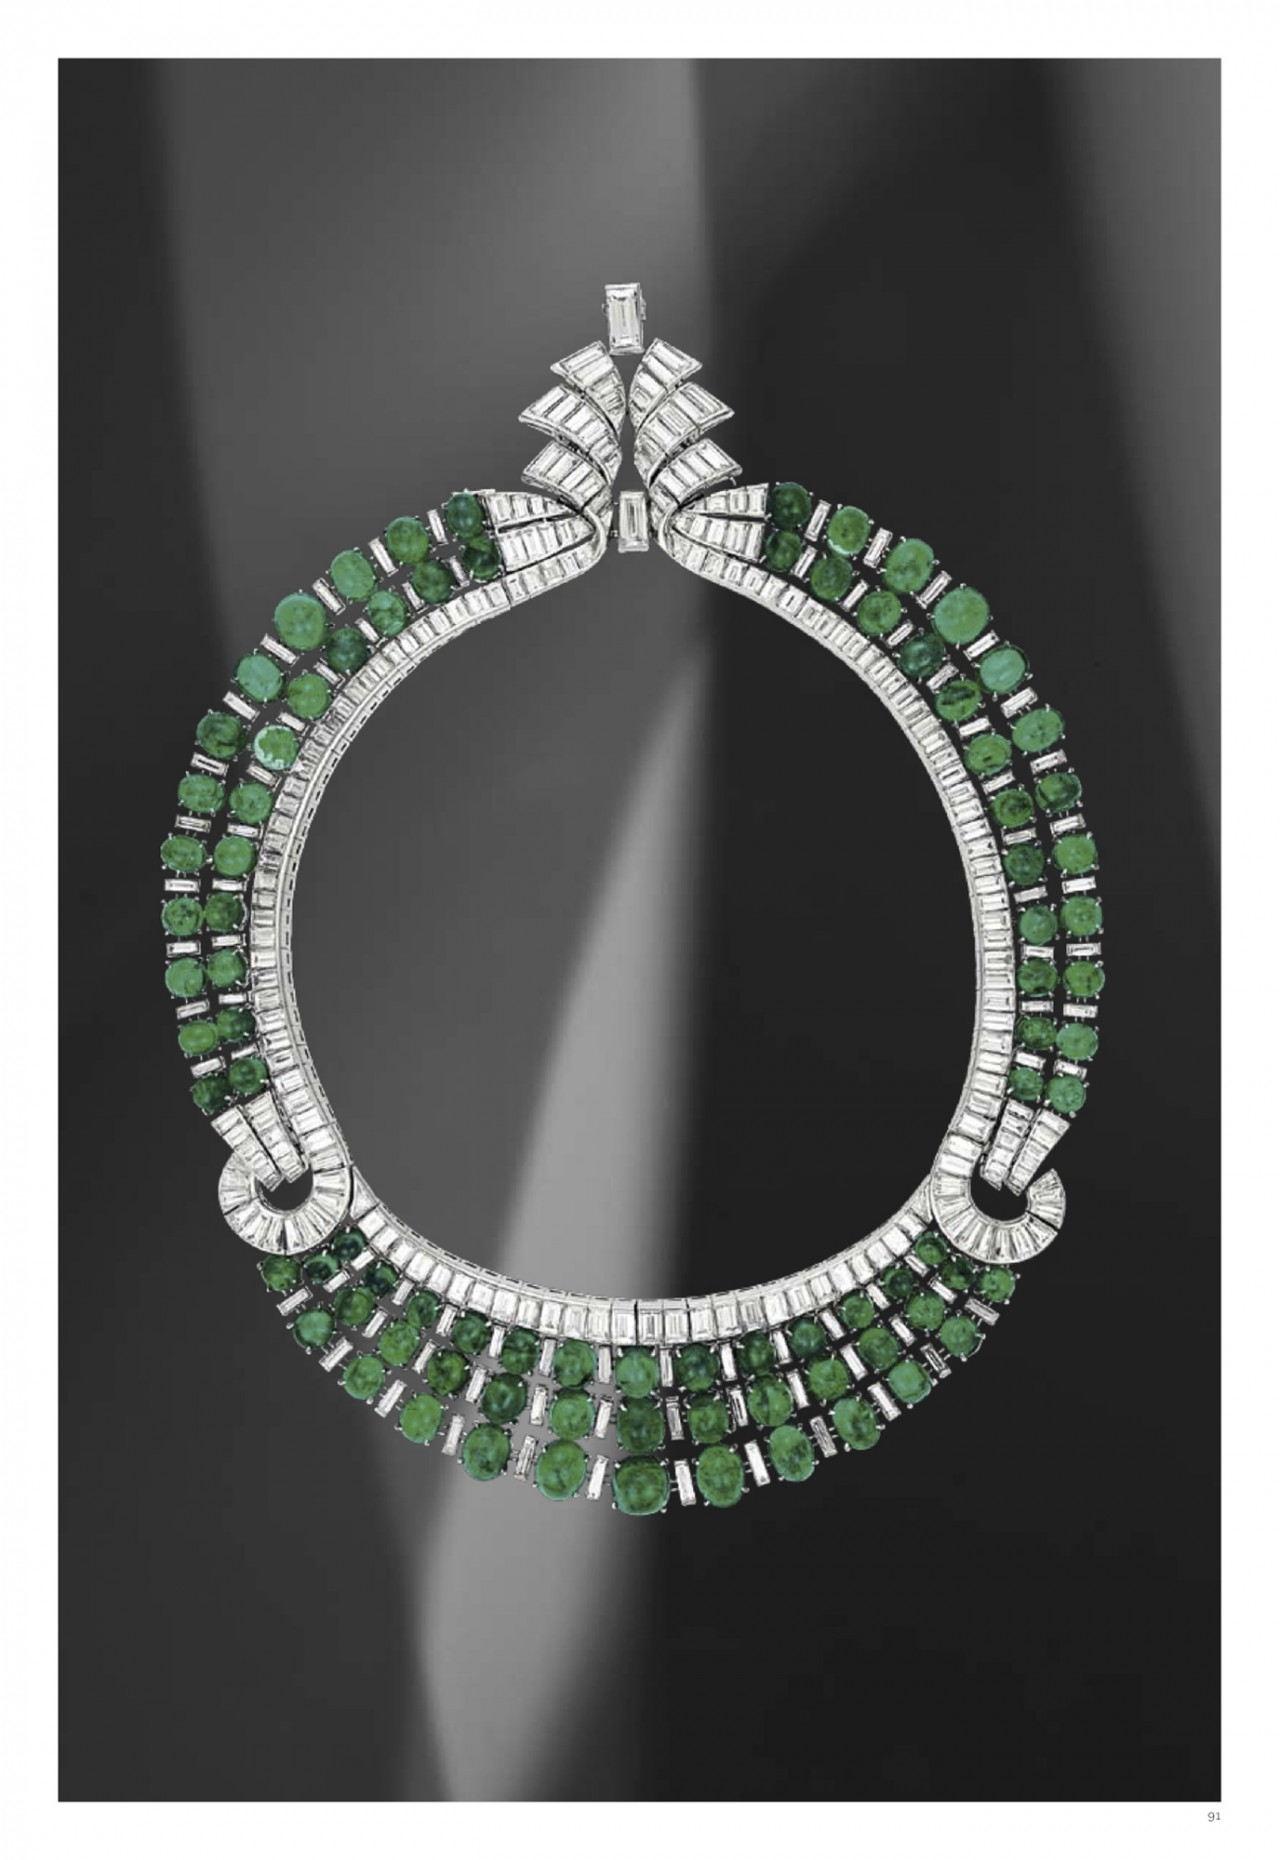 Patrick Gries Van Cleef & Arpels: <br/>The spirit of beauty